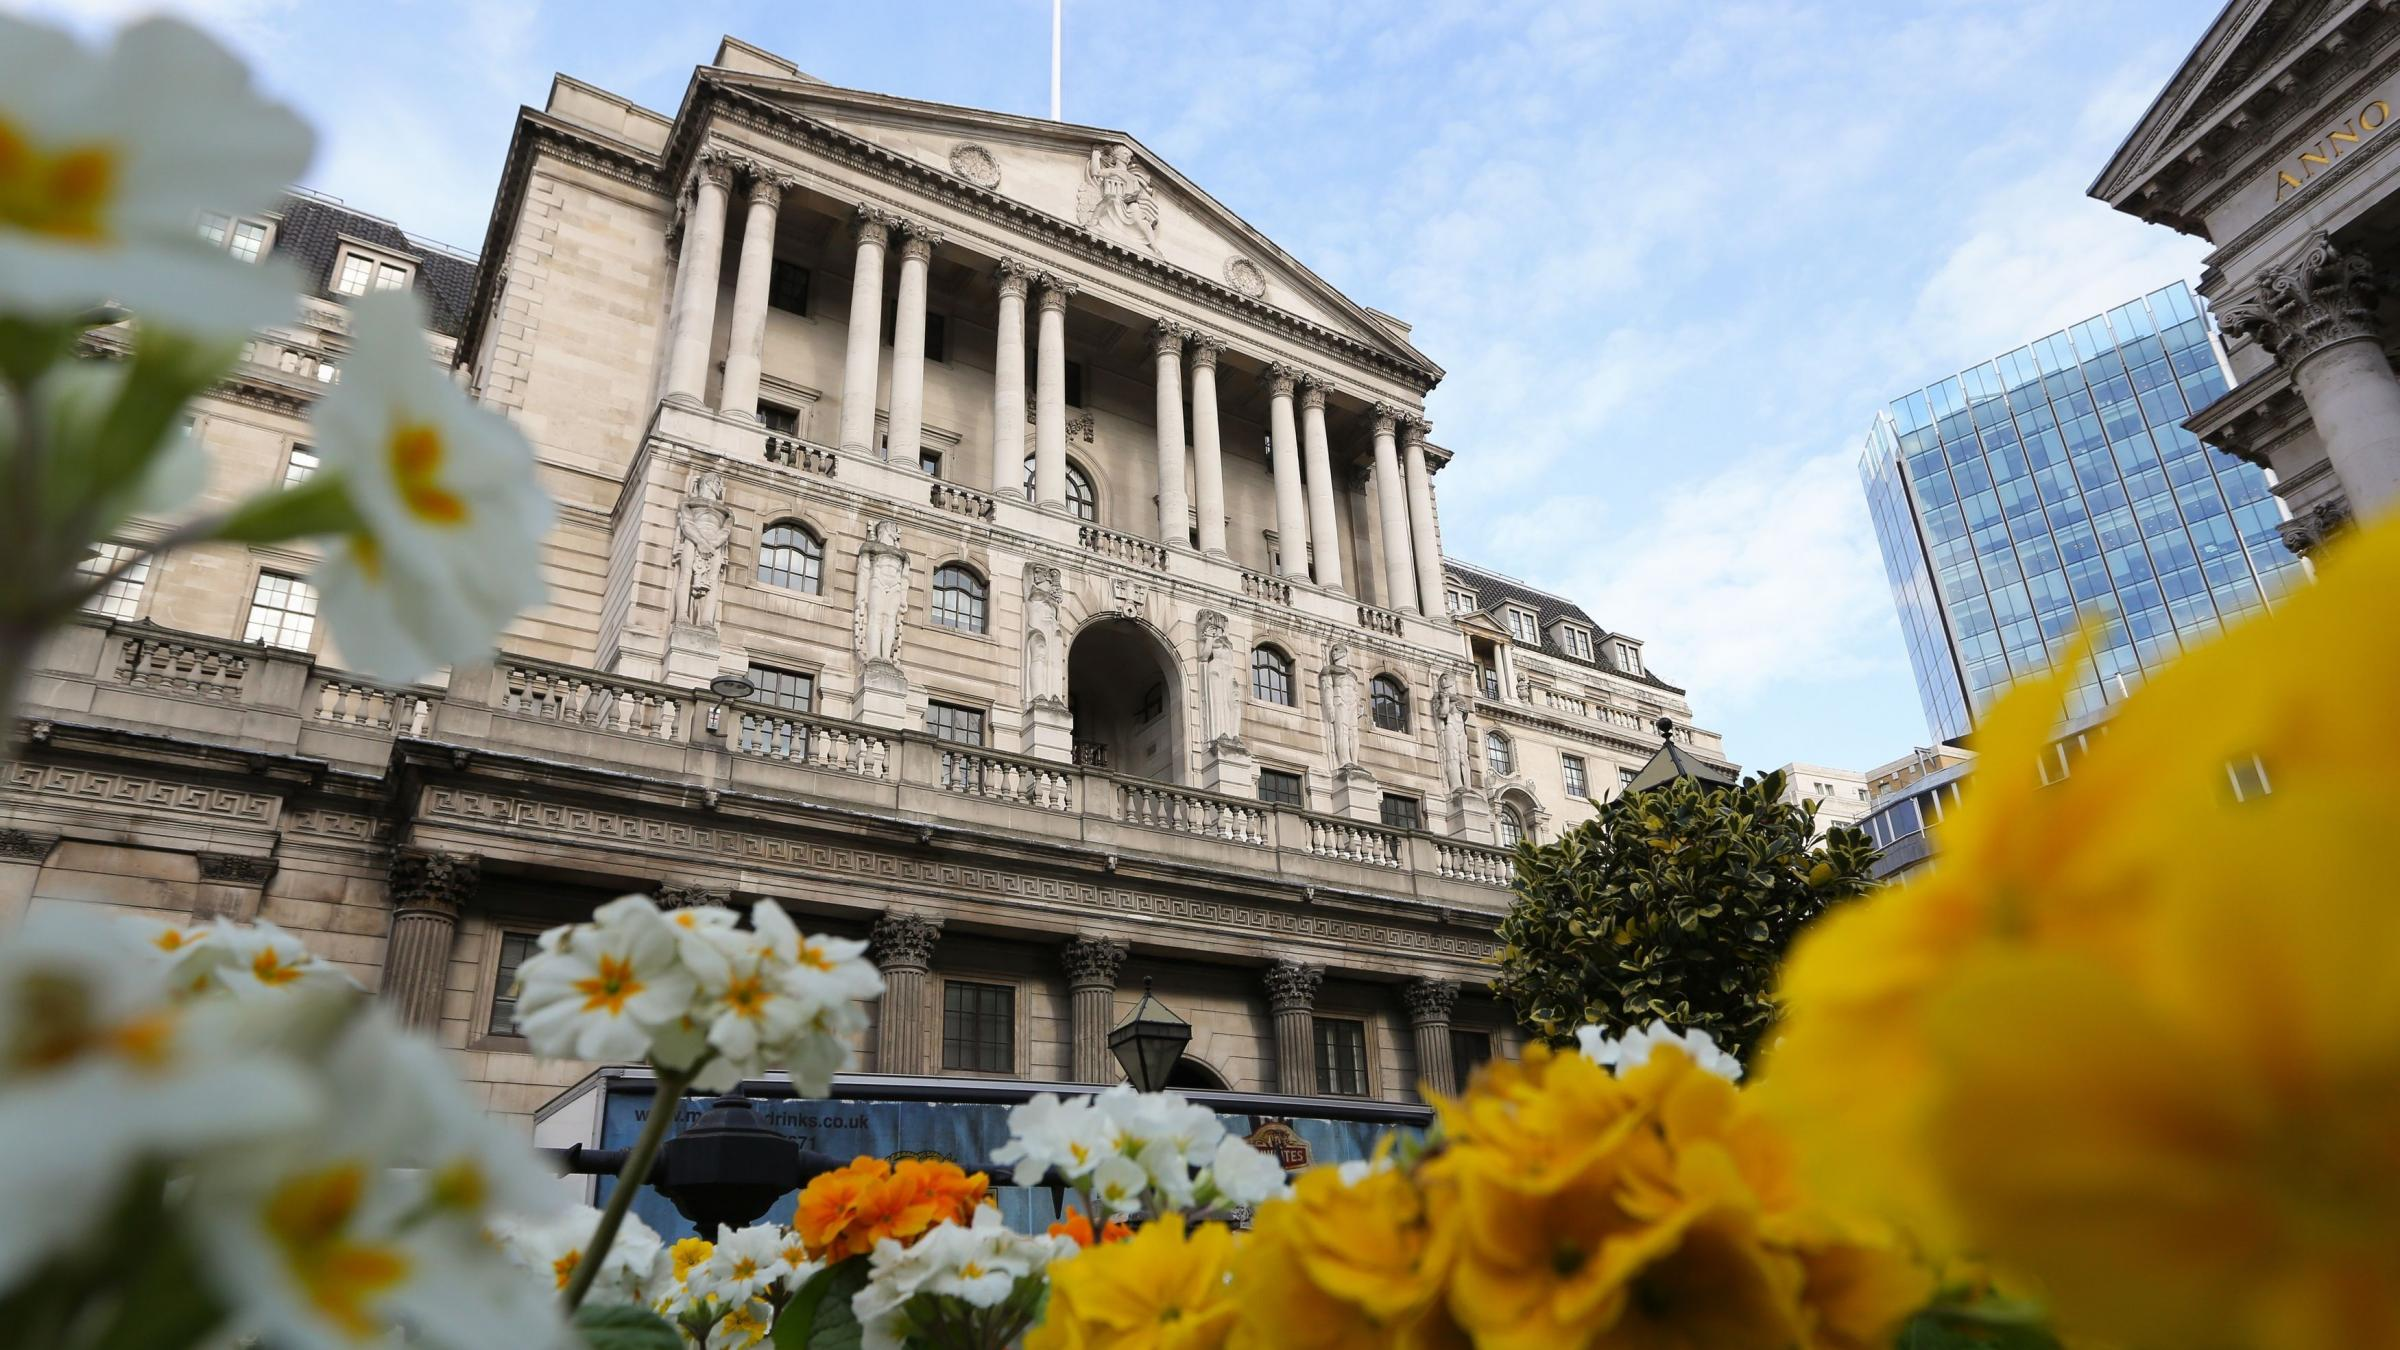 Interest rates expected to be held at 0.25% after inflation reaches 2.9%